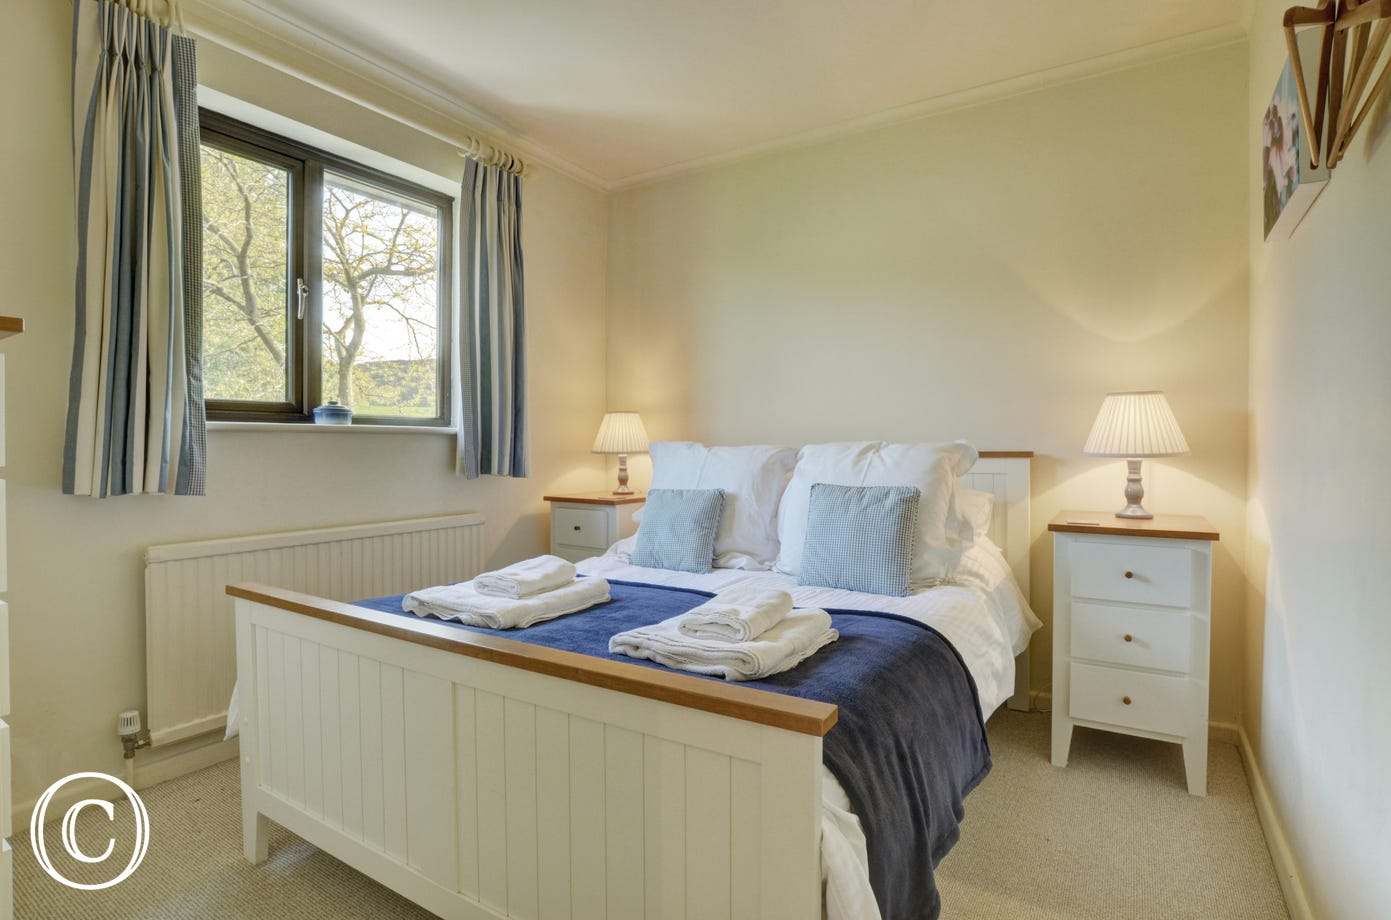 Cosy, double bed with bedside tables